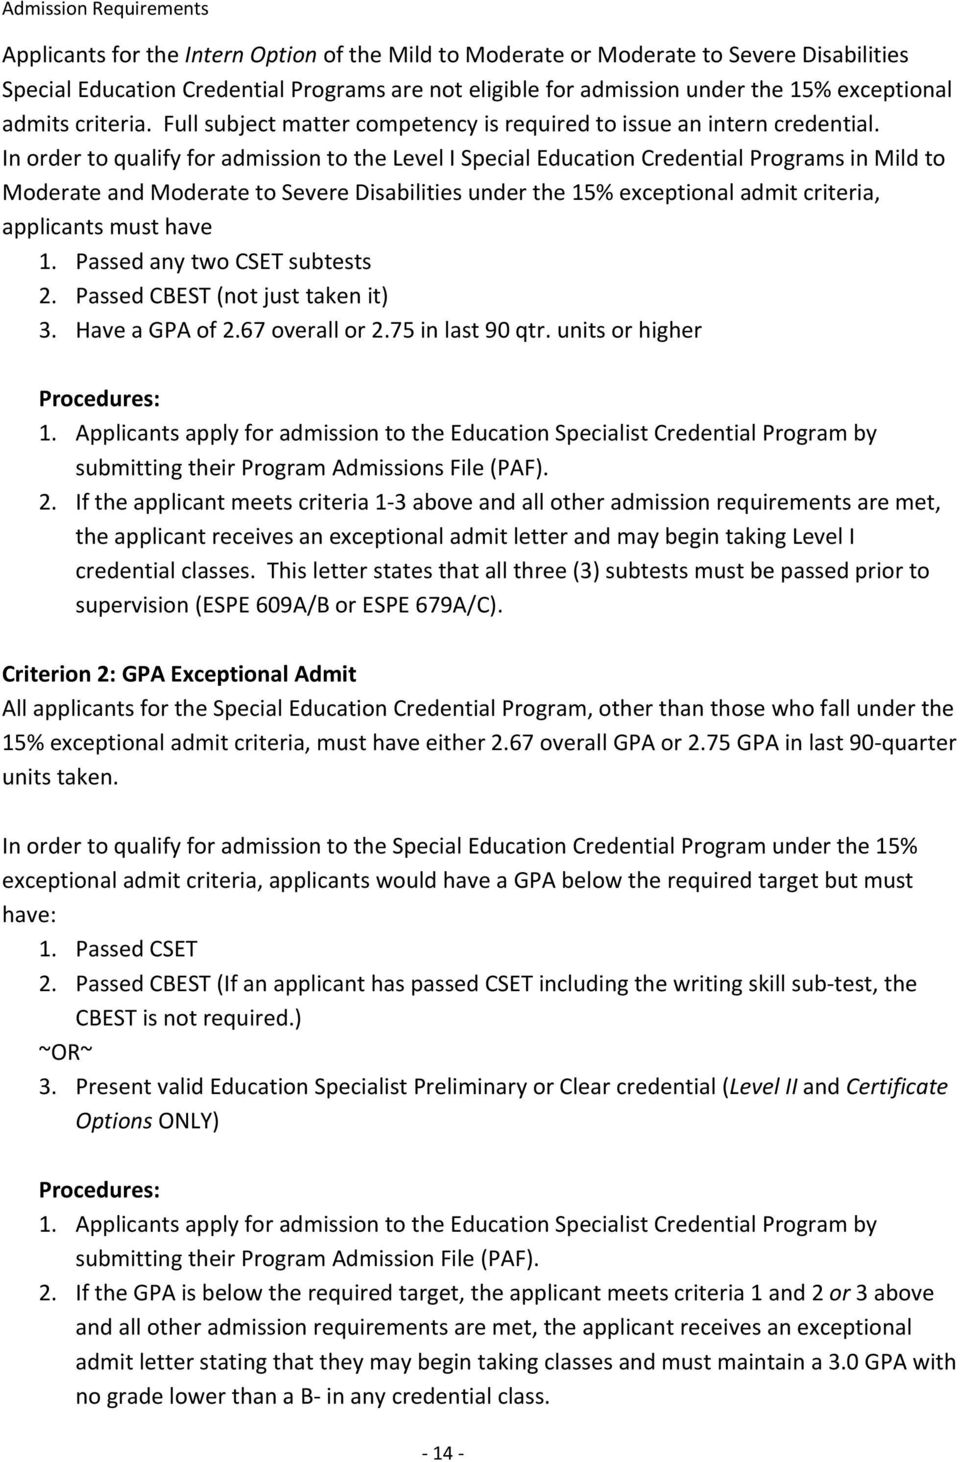 Special Education Credential Program Admissions Booklet - PDF